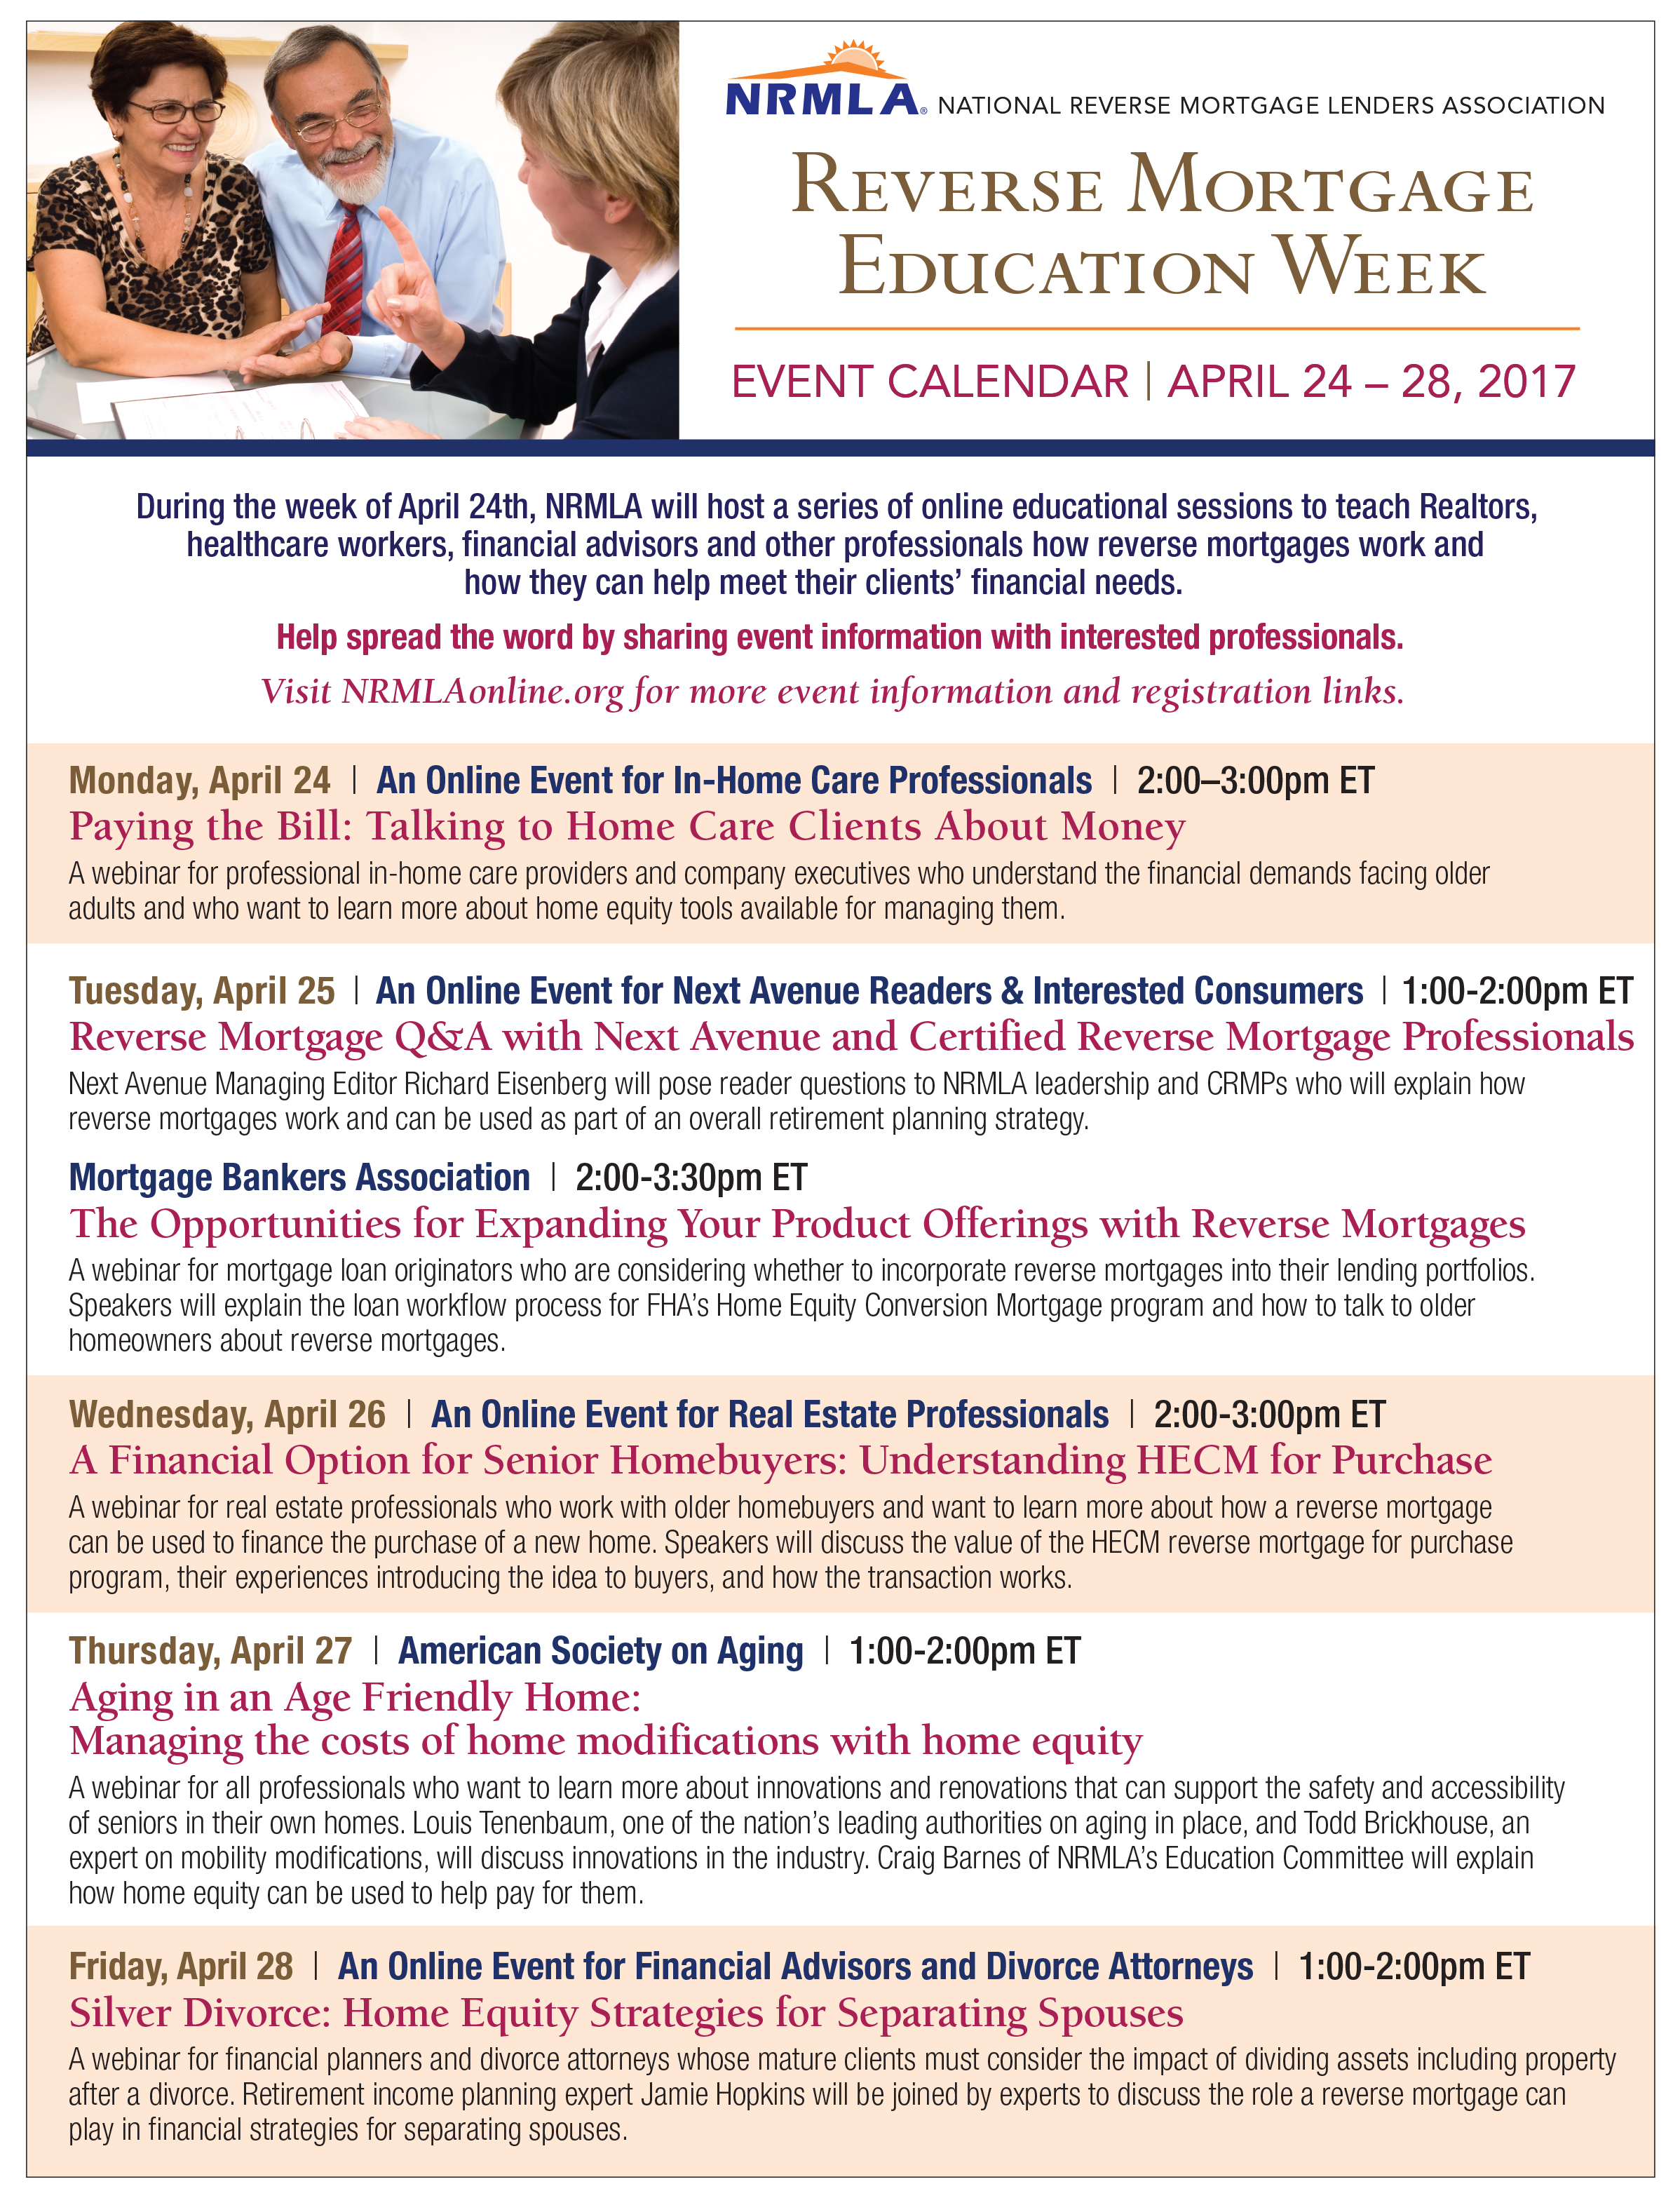 a reverse mortgage education week webinar for inhome care this webinar is free and open to all interested